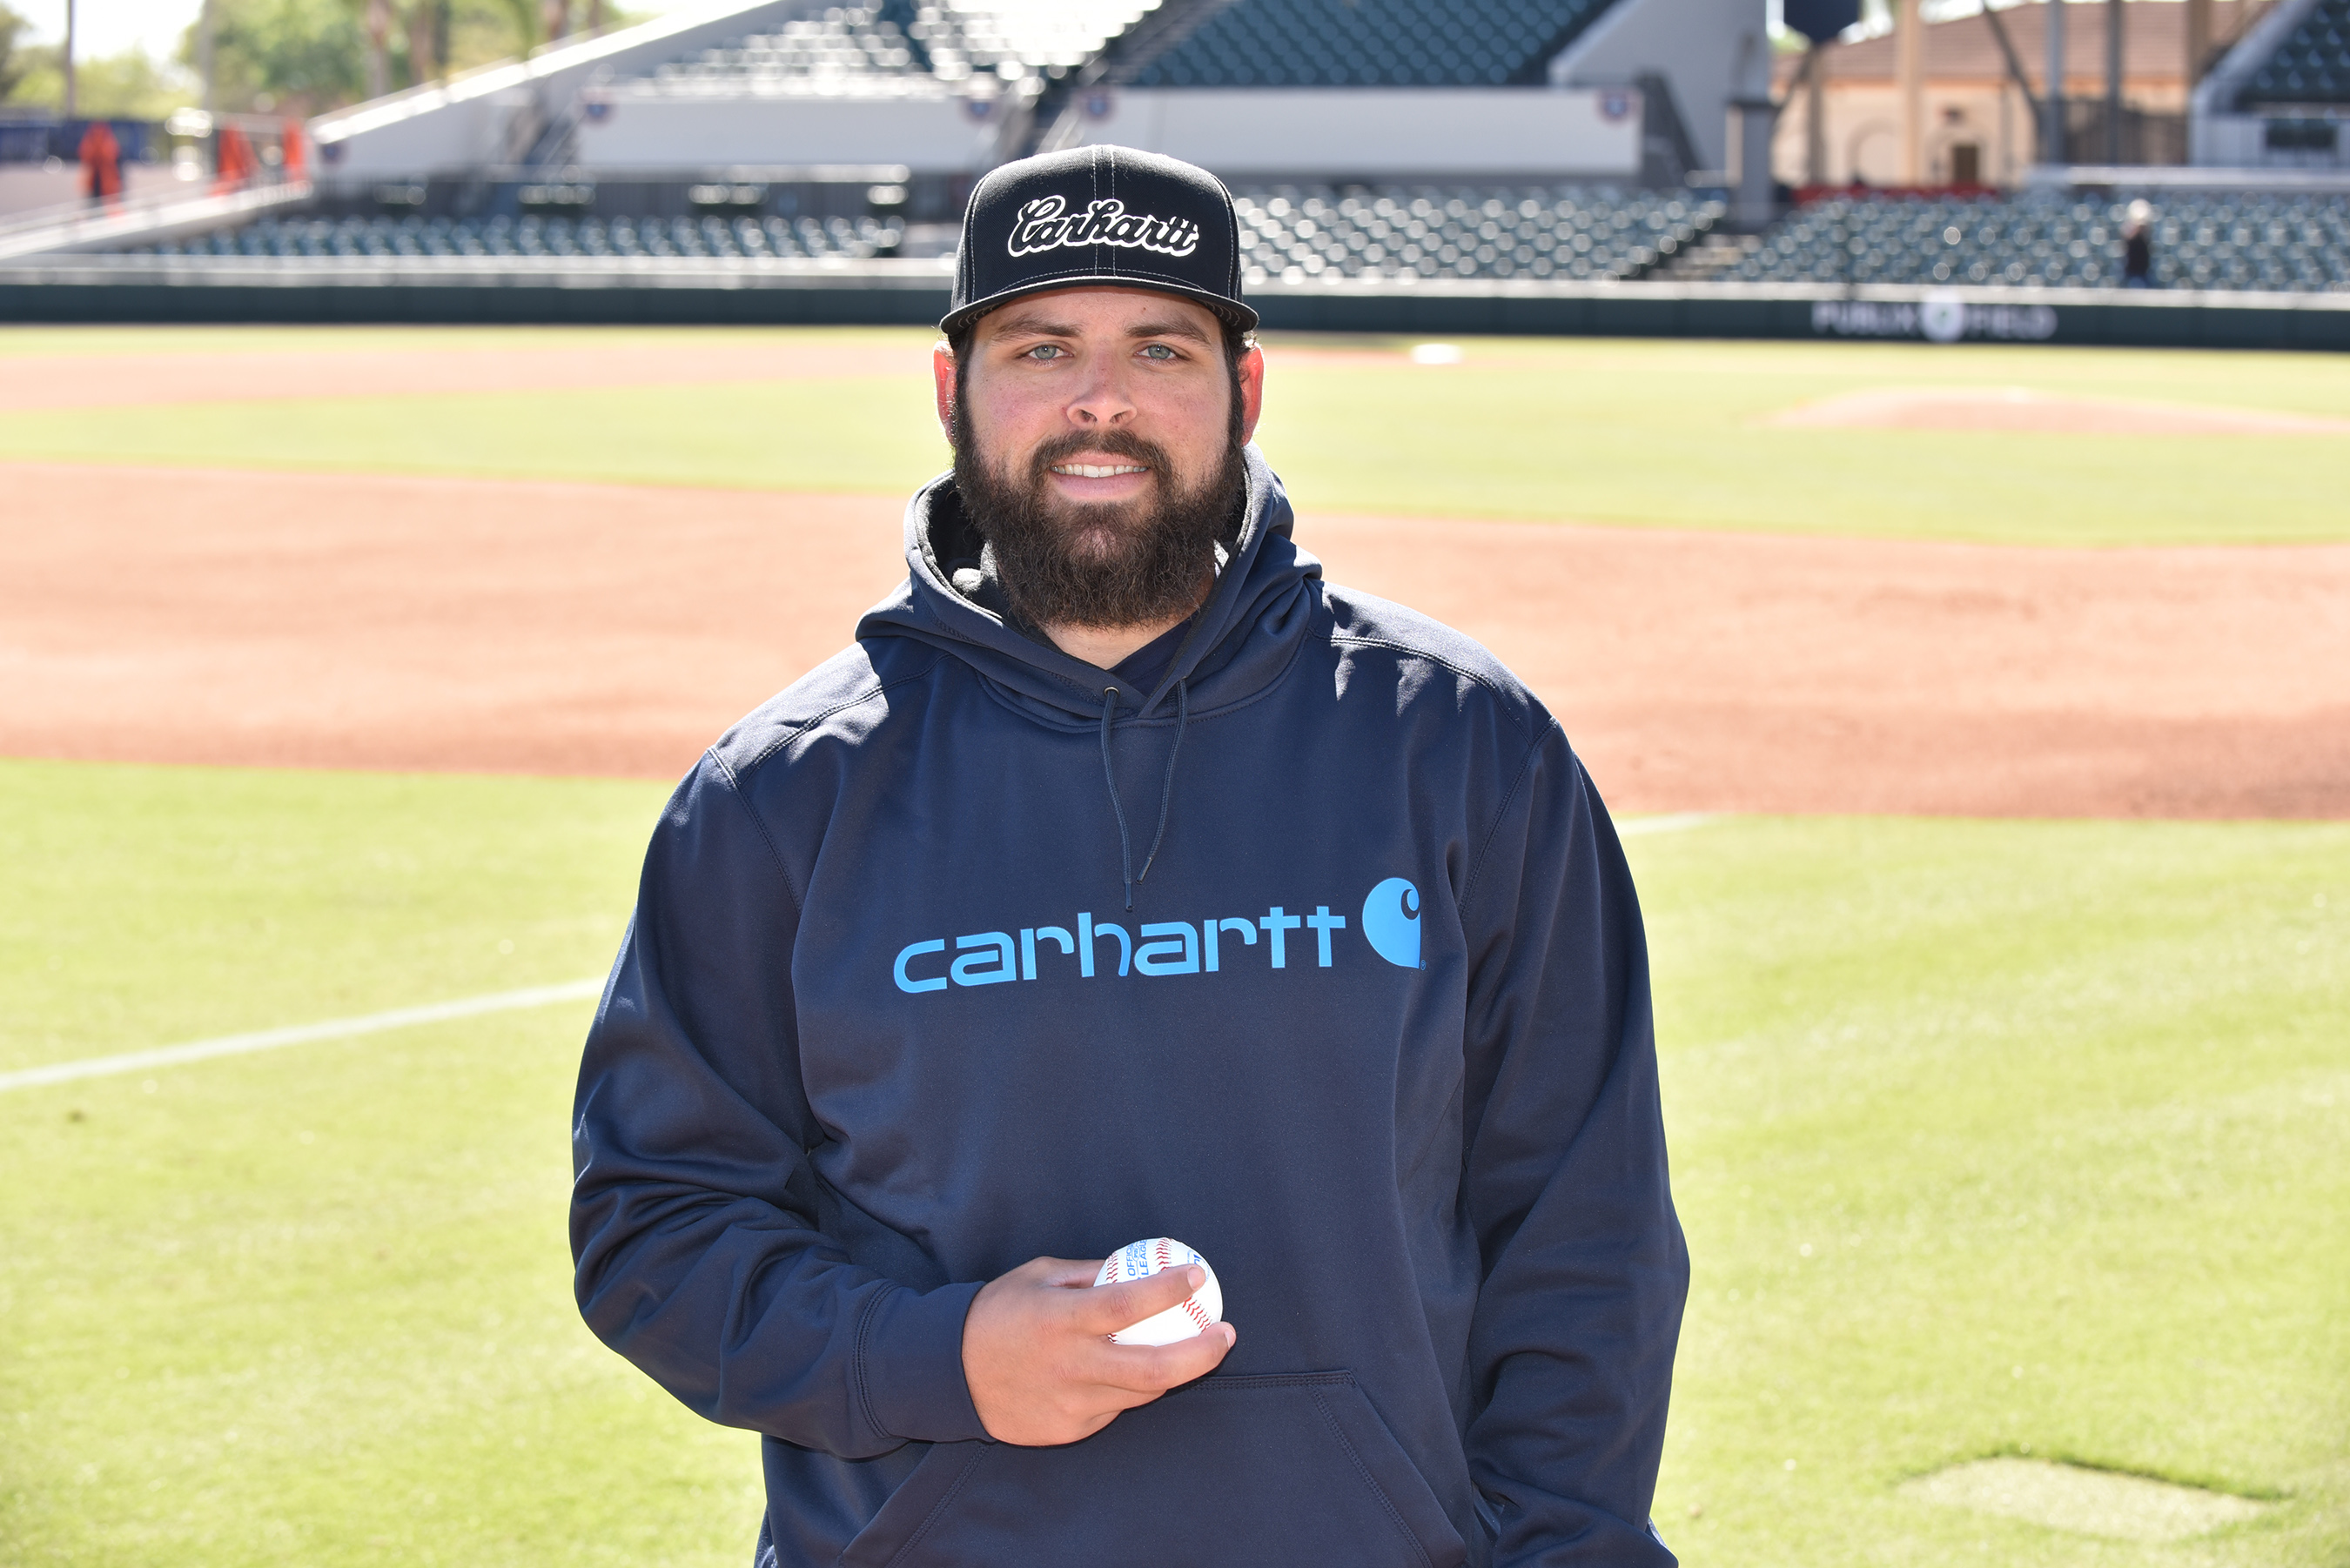 As a member of the 2017 Carhartt Starting Rotation, Michael Fulmer will help support Helmets to Hardhats by raising $100 for the organization for each strikeout he records during the 2017 baseball season.